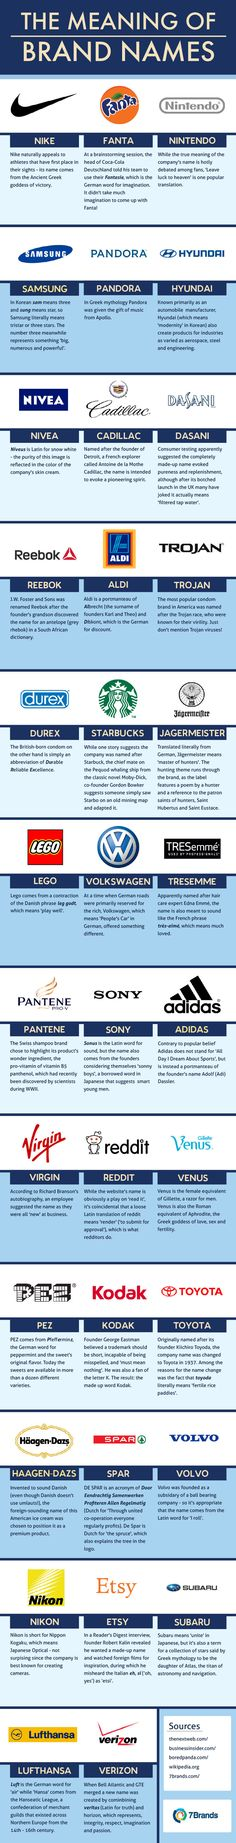 Infographic: The Meaning of some global brand names.